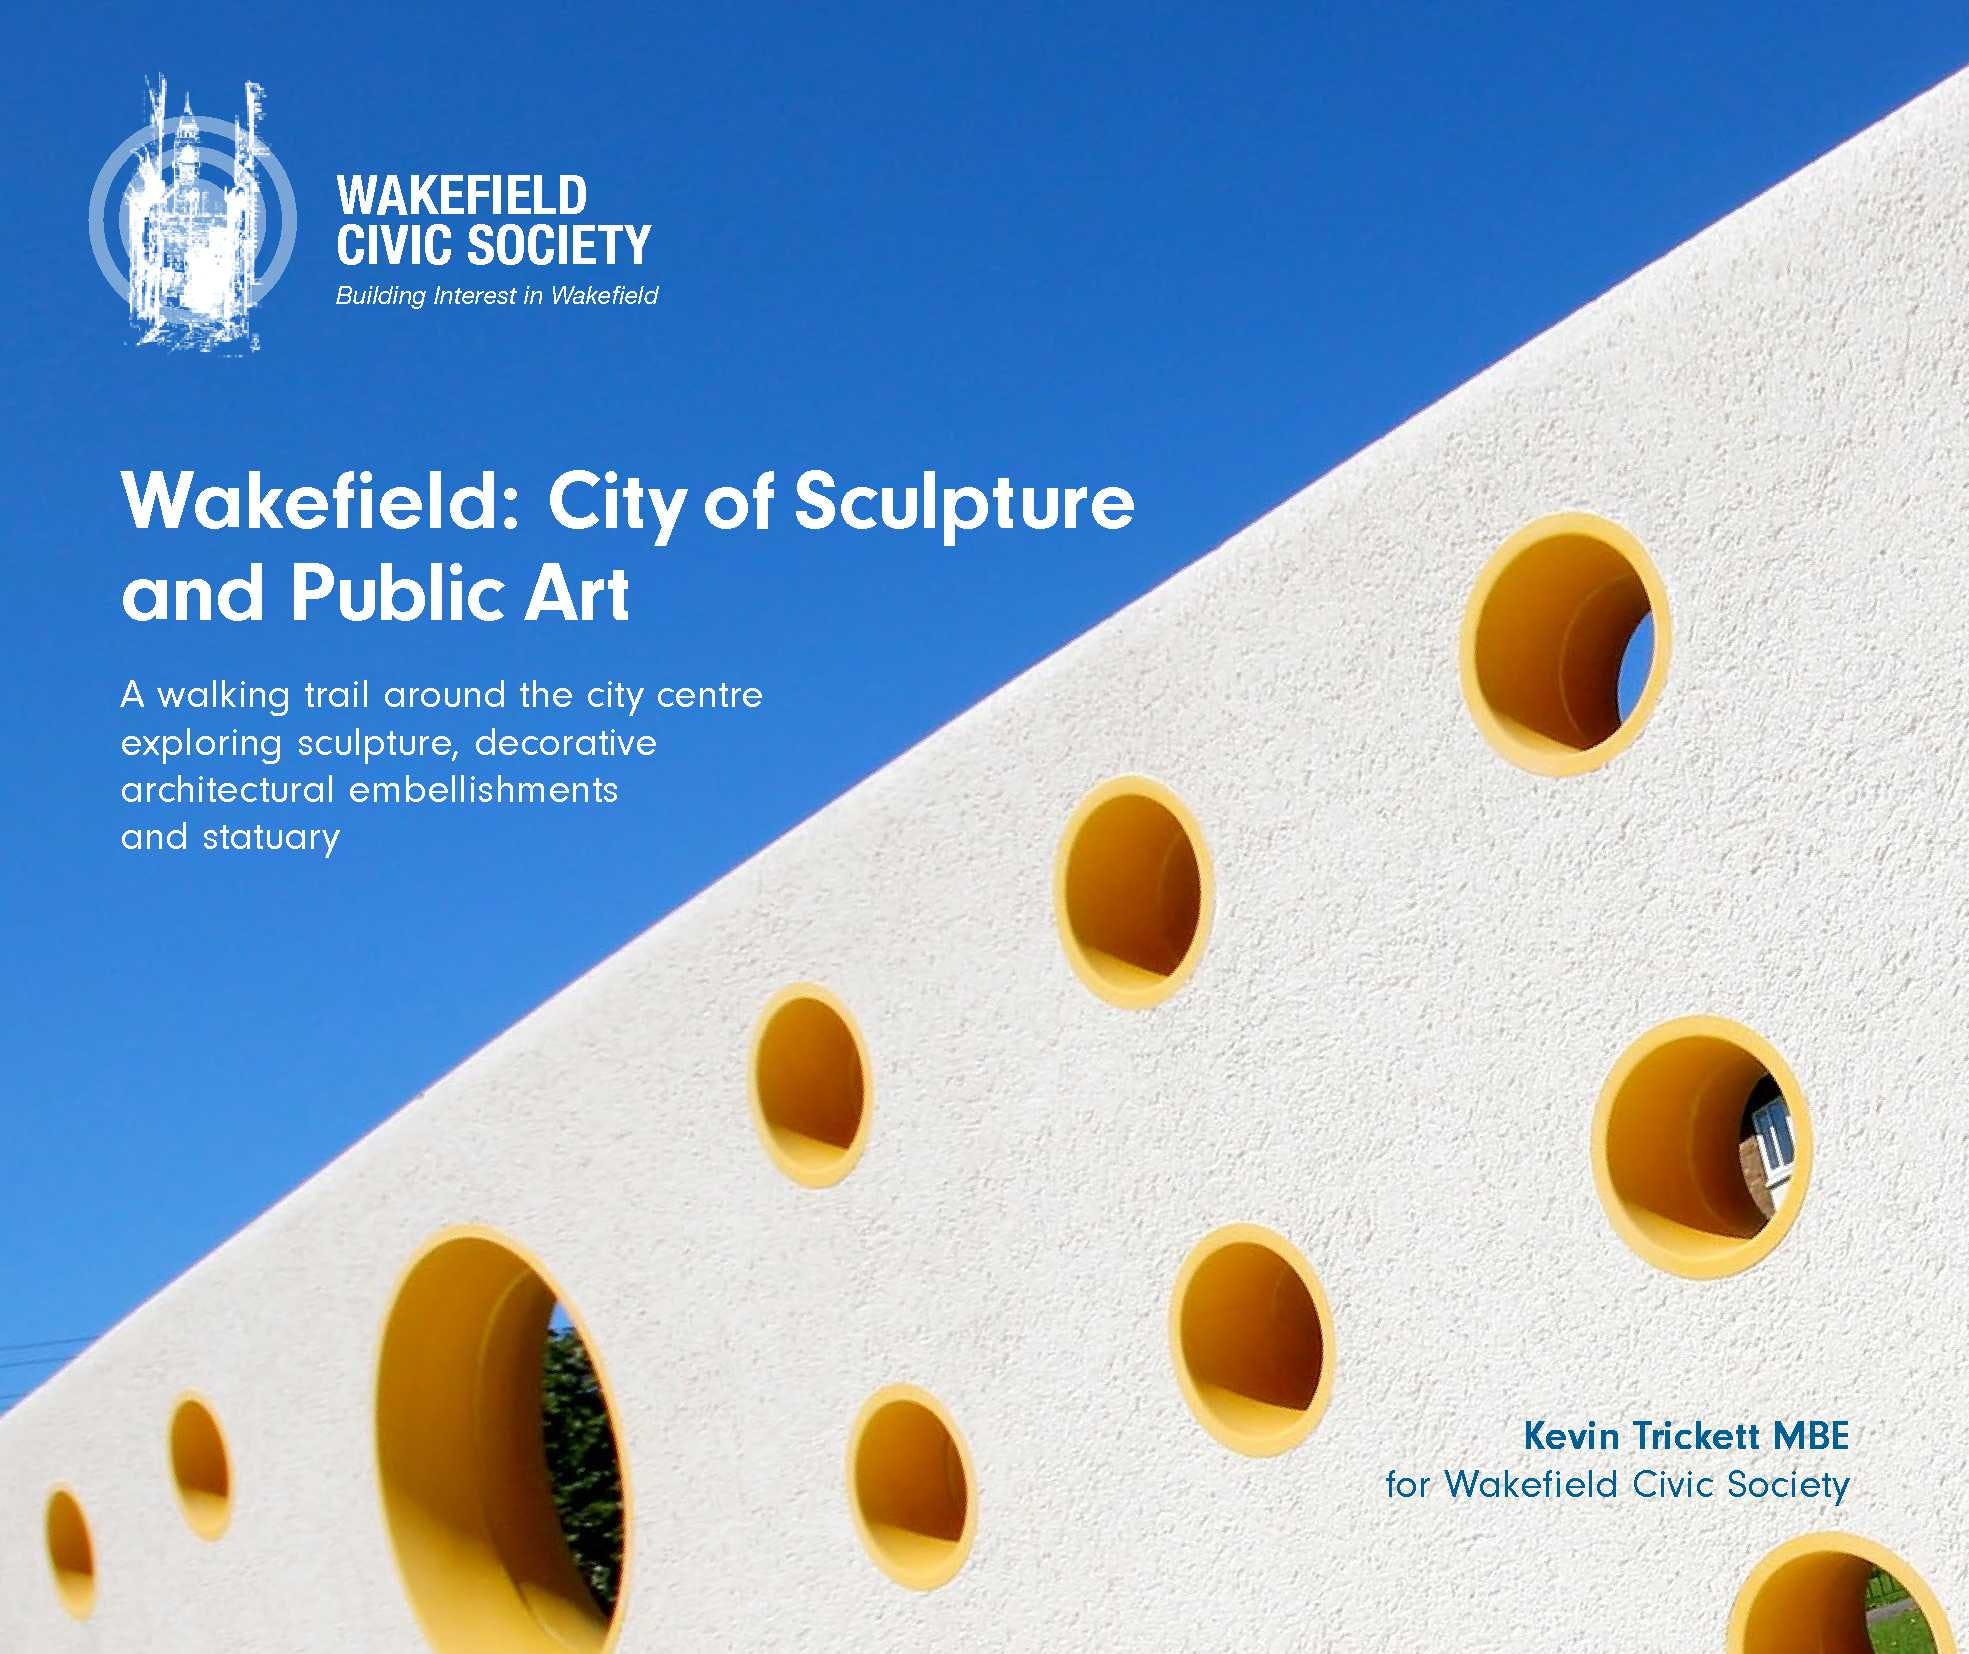 Wakefield: City of Sculptutre and Public Art